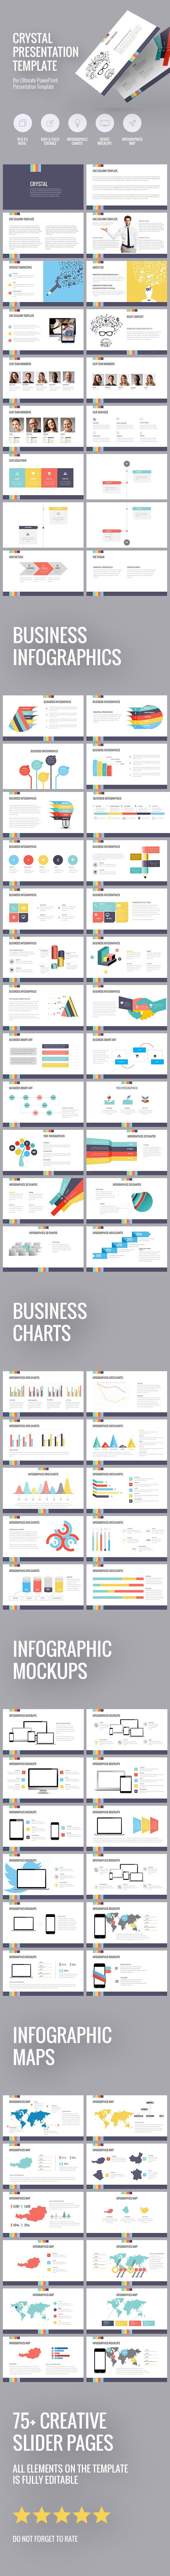 Crystal presentation template - PowerPoint Templates Presentation Templates